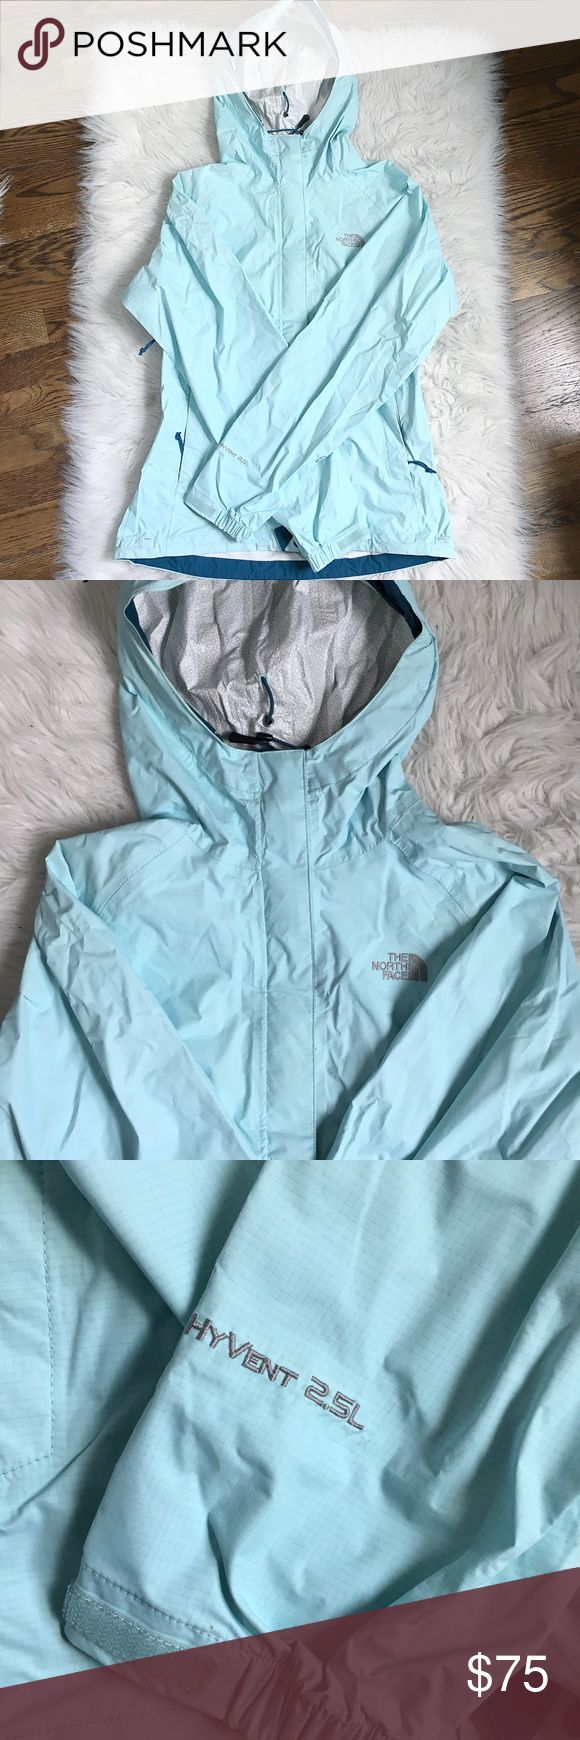 Light Blue North Face Rain Jacket North Face shell. Only worn 2-3 times. Not sure where the faint stain above the logo came from. I haven't tried to remove it b/c I only noticed it while photographing. Rare color. Retail: $99. North Face Jackets & Coats